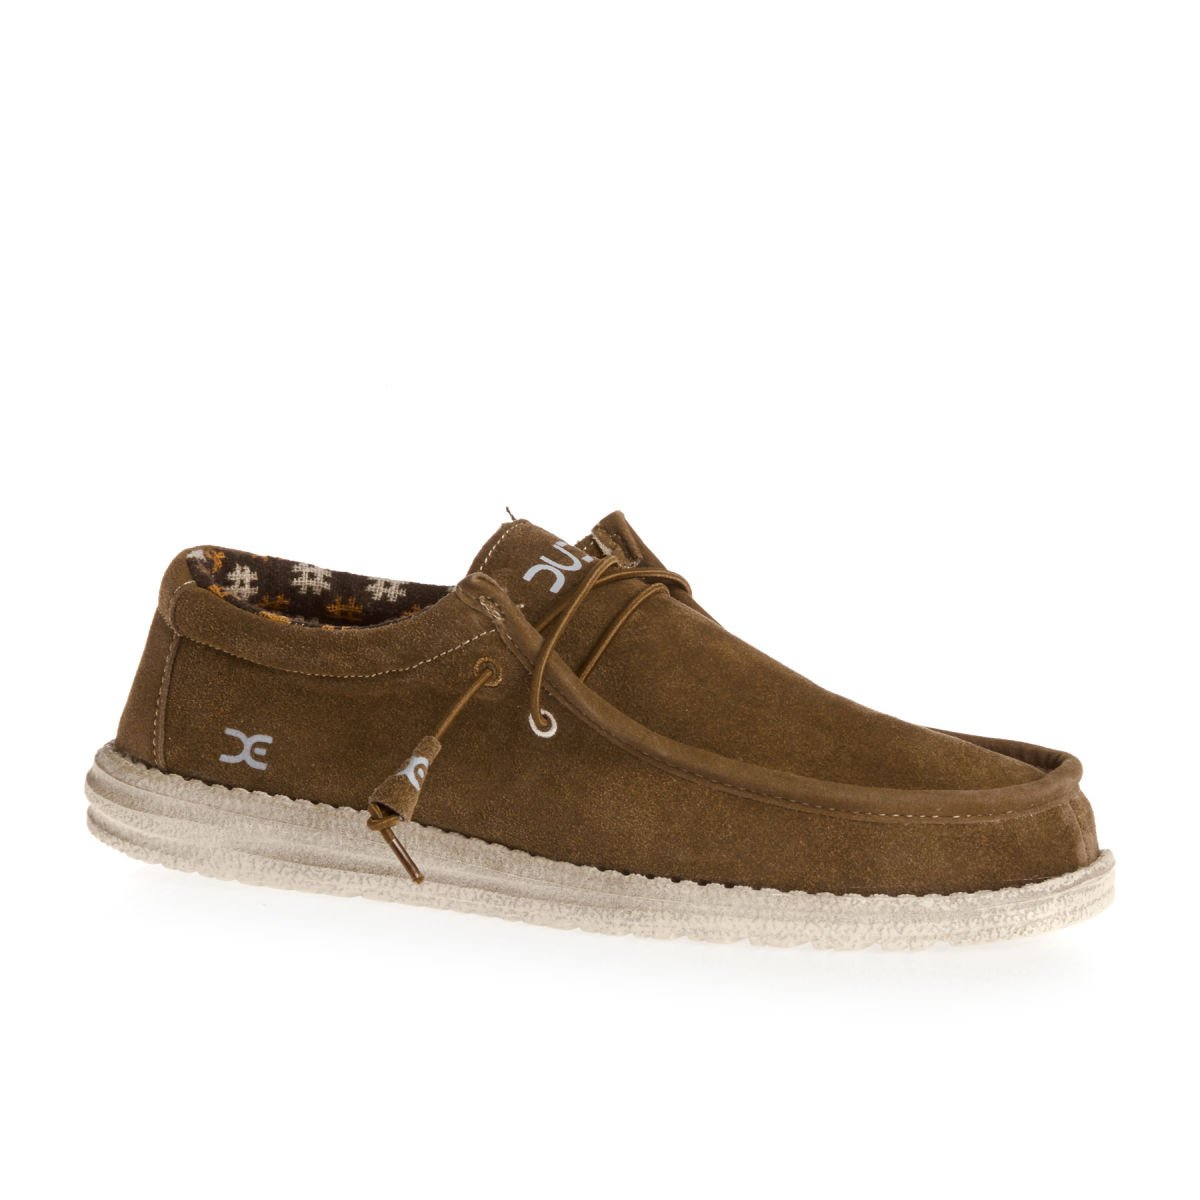 TALLA 43 EU. Dude Shoes Men's Wally Winter Suede Nut